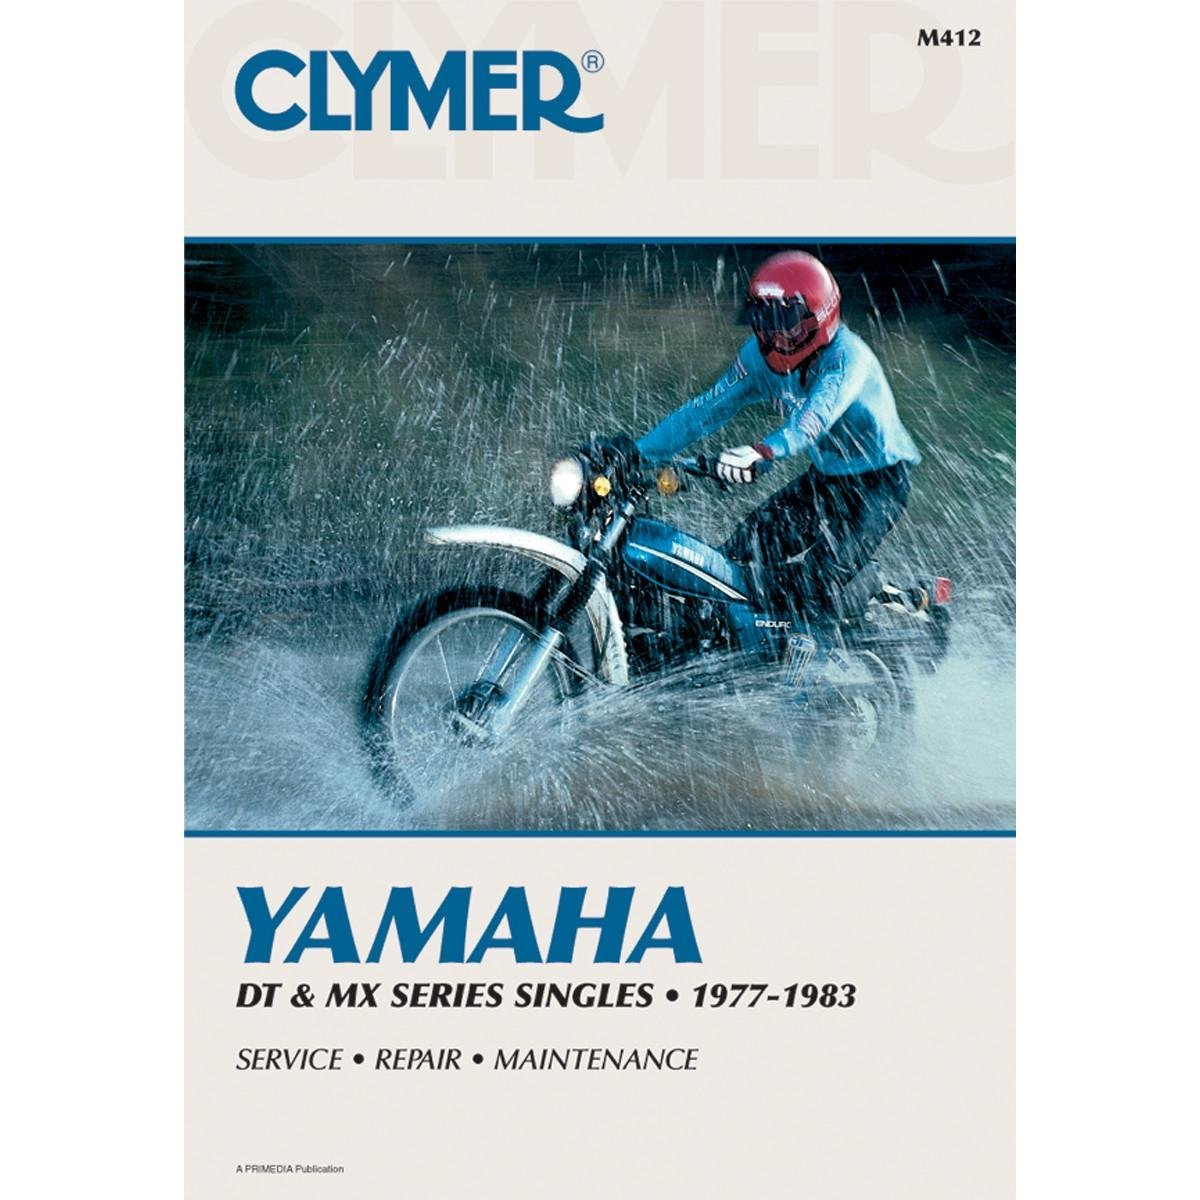 repair manual for yamaha dt mx100 400 77 83 by clymer walmart com rh walmart com yamaha xs650 clymer manual yamaha virago clymer manual